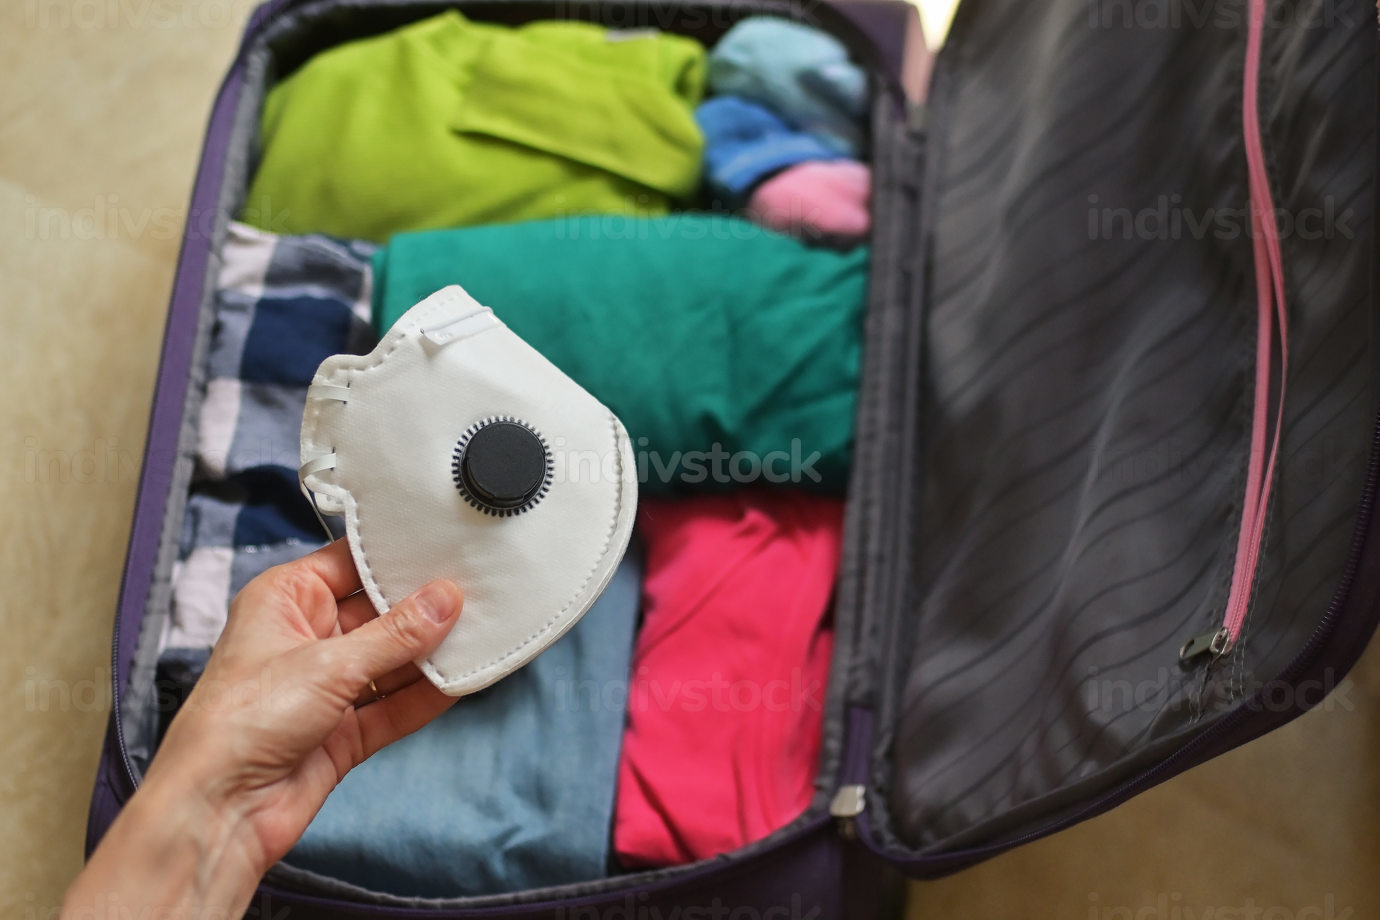 Travel Bag Packed With Clothes, And Medical Masks